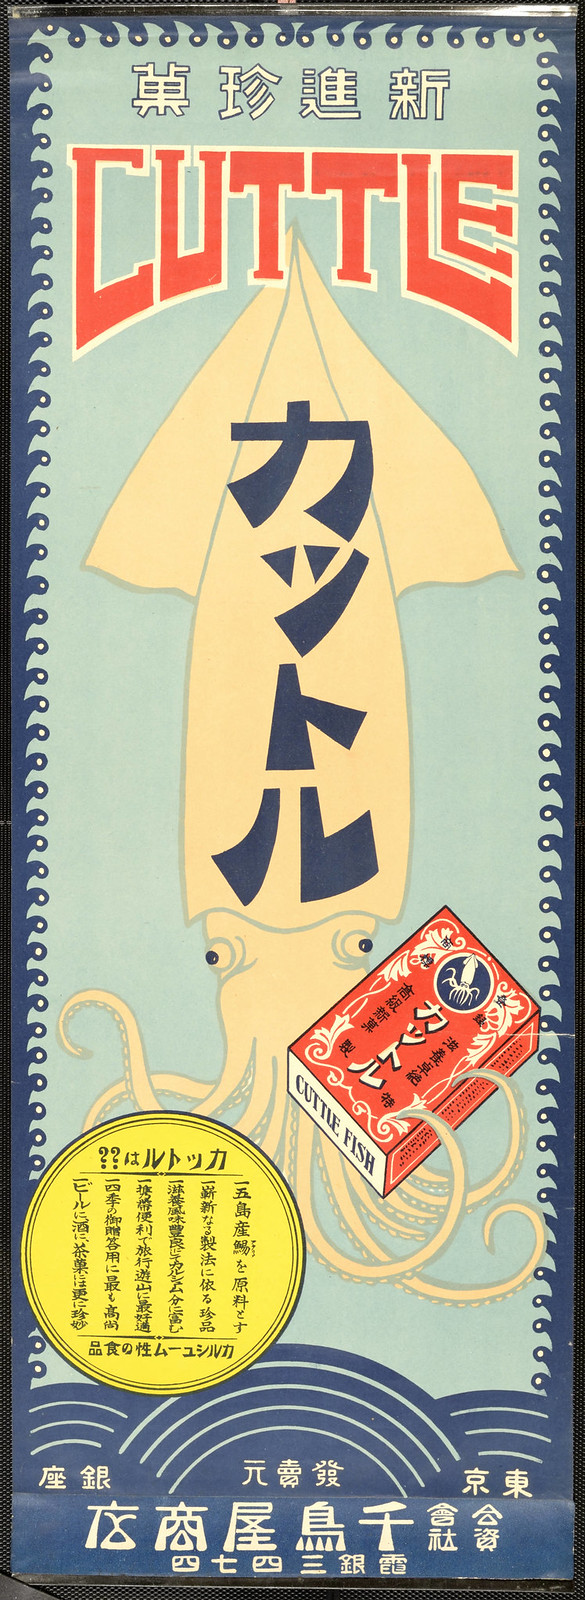 Japanese lithograph of Cuttlefish with typographic advertisement overlay